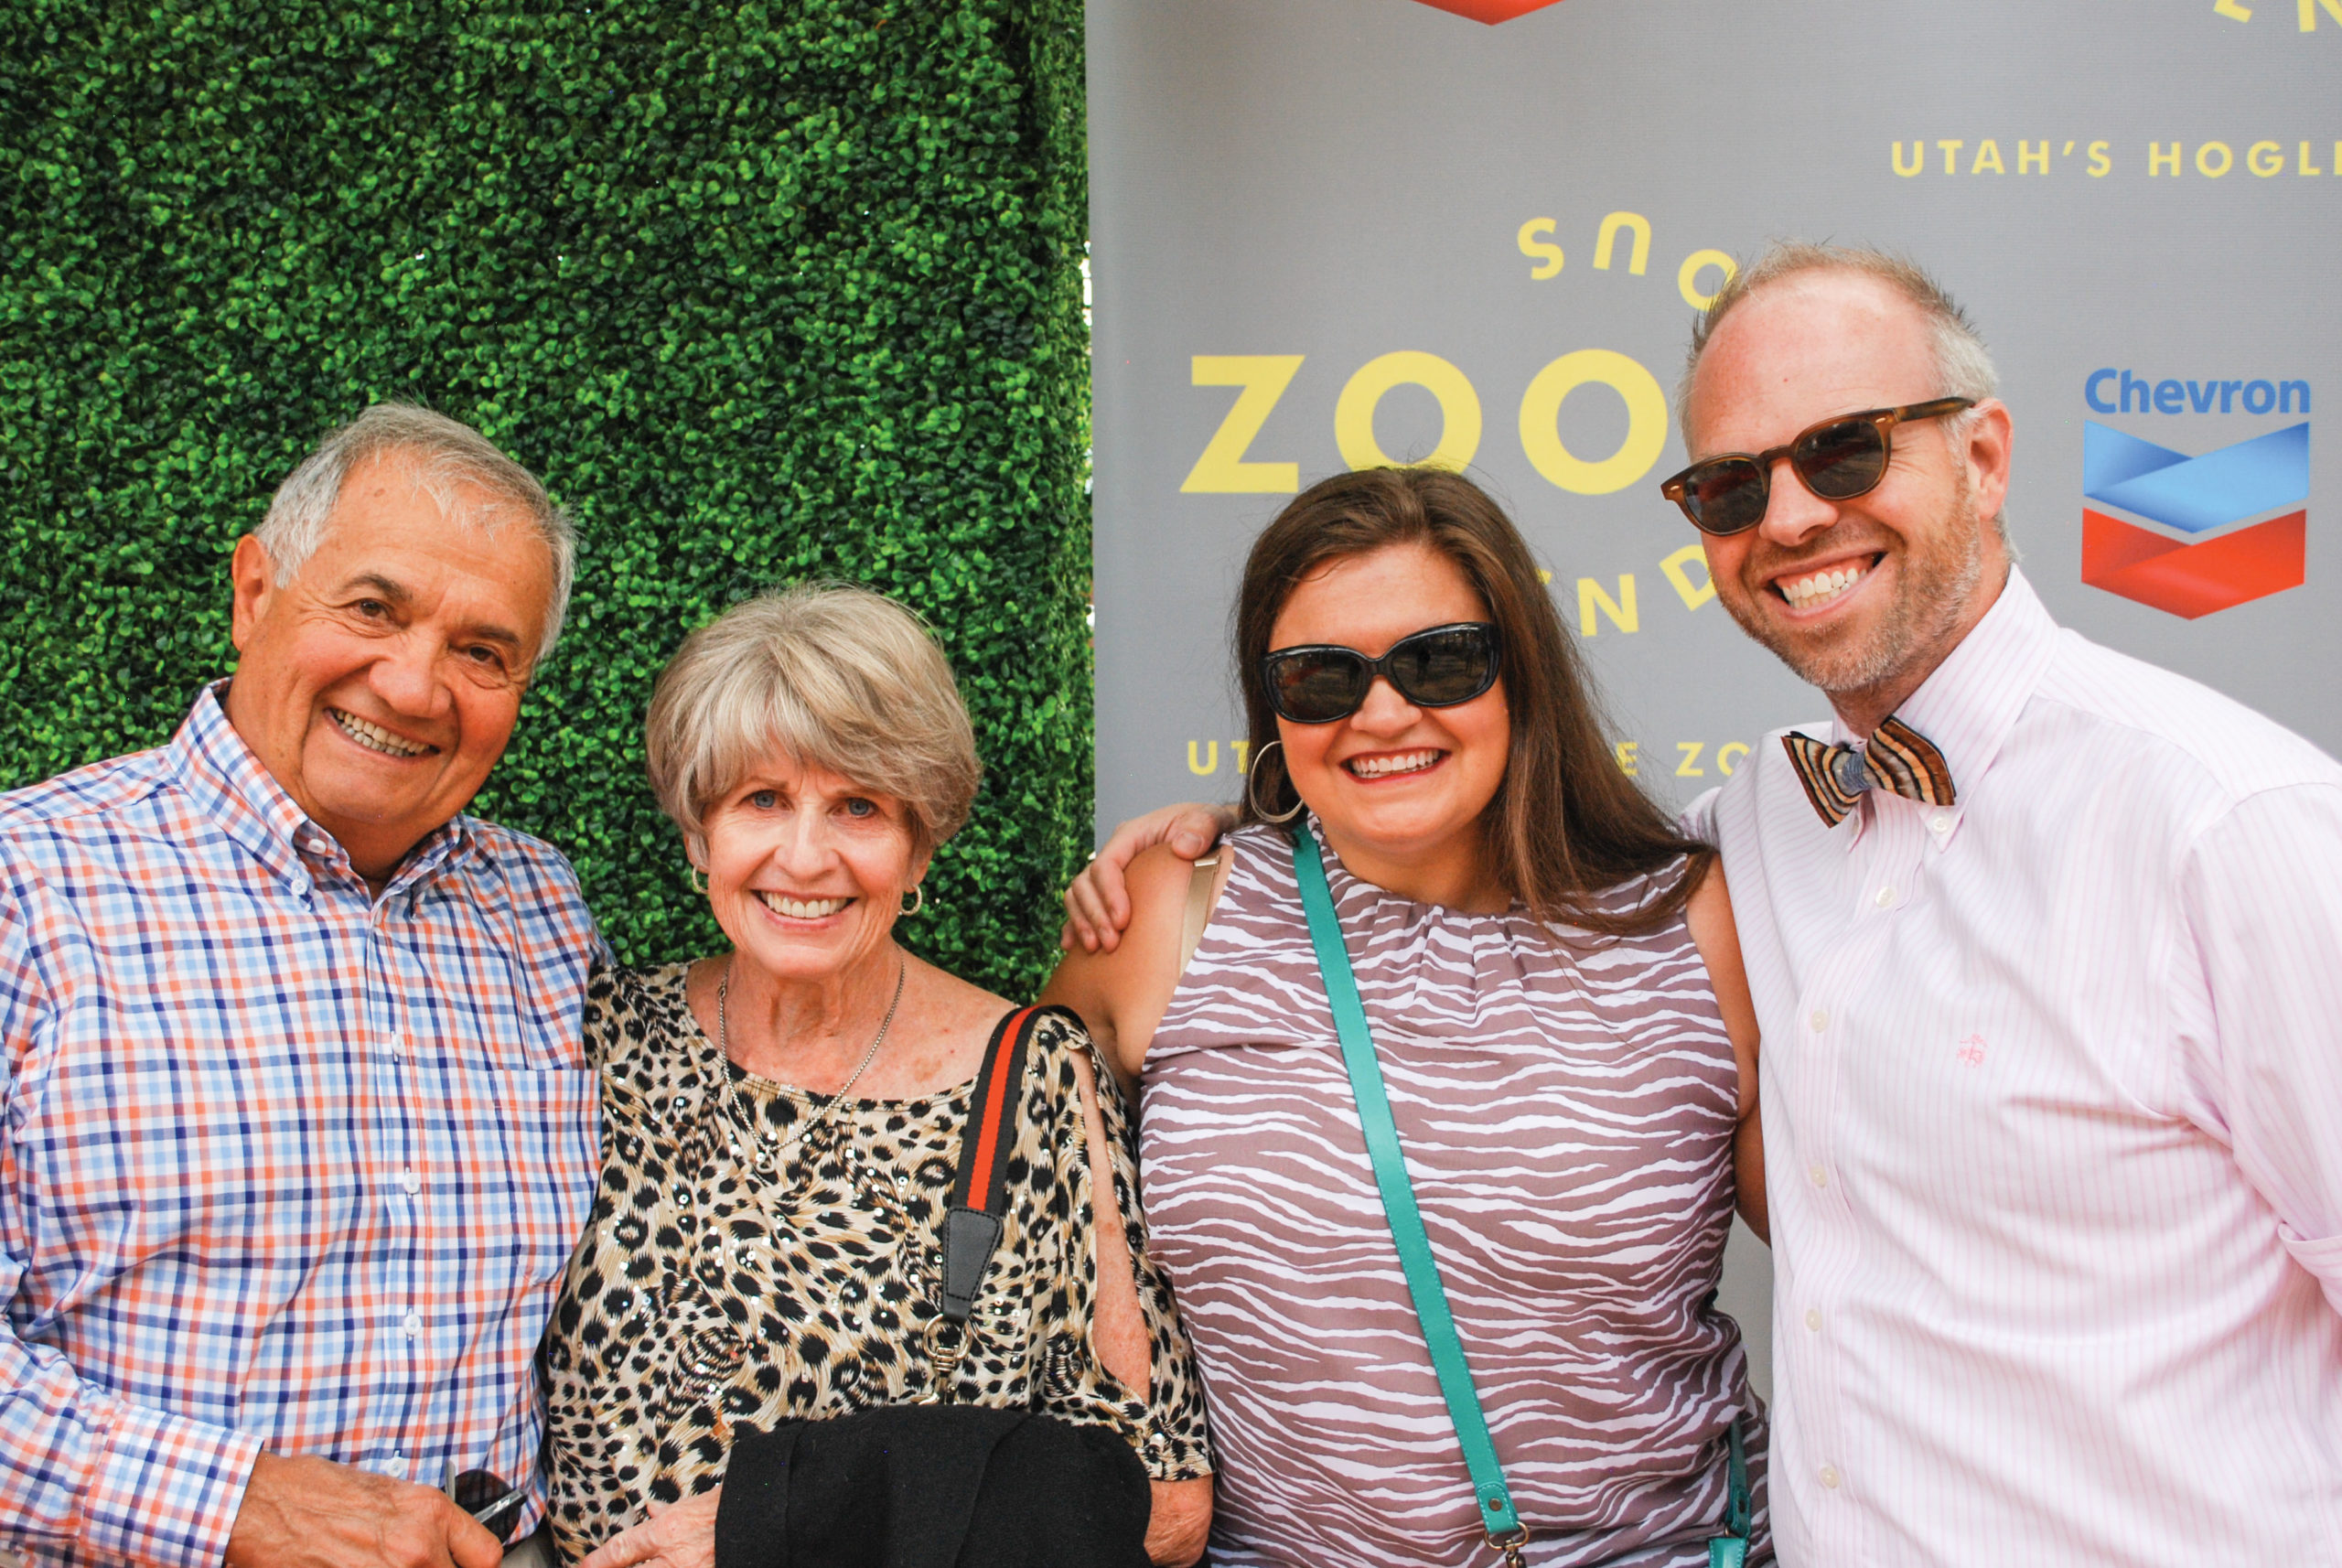 #loveutah Zoo Rendezvous